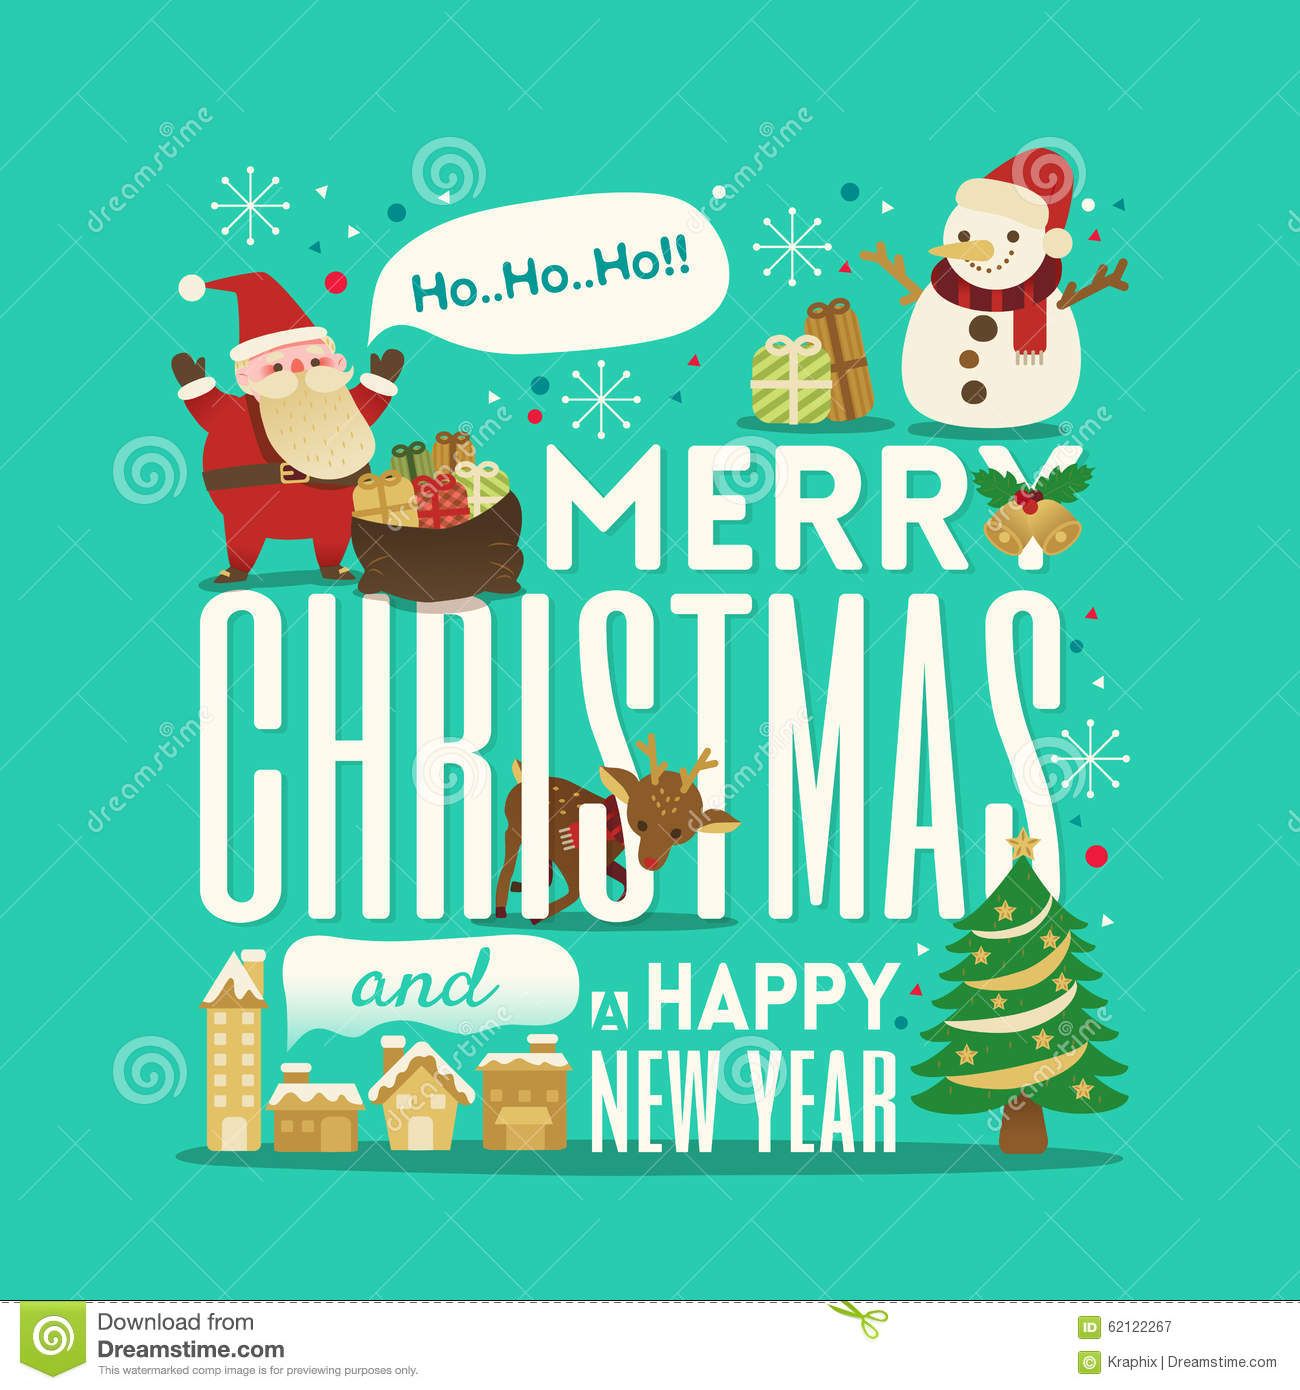 Greeting merry christmas and happy new year stock vector image